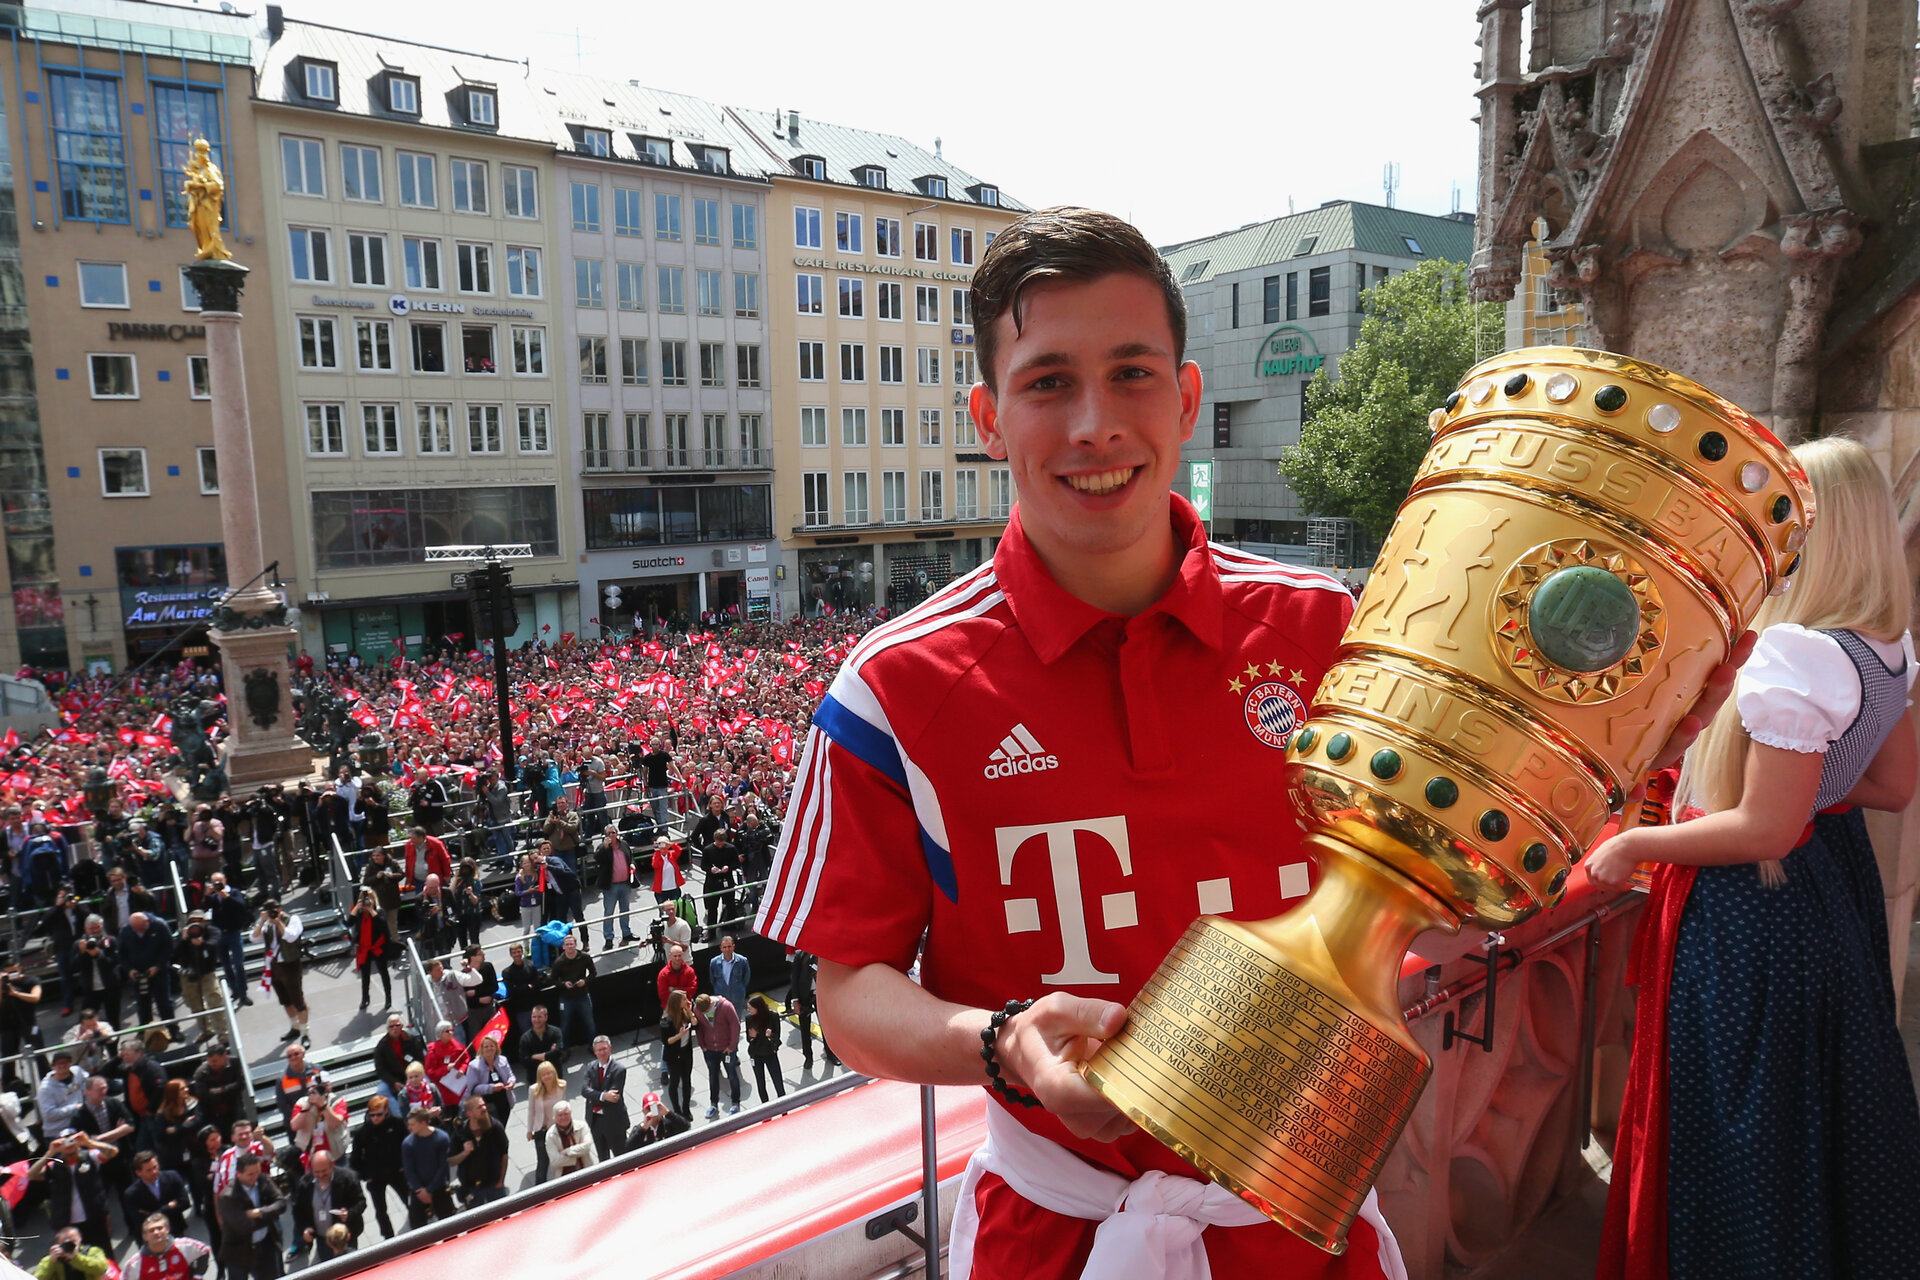 MUNICH, GERMANY - MAY 18:  Pierre-Emile Hojbjerg of Bayern Muenchen holds the German cup winners trophy as the team celebrate winning the German Championship title and the German Cup finale on the town hall balcony at Marienplatz on May 18, 2014 in Munich, Germany.  (Photo by Alexander Hassenstein/Bongarts/Getty Images)